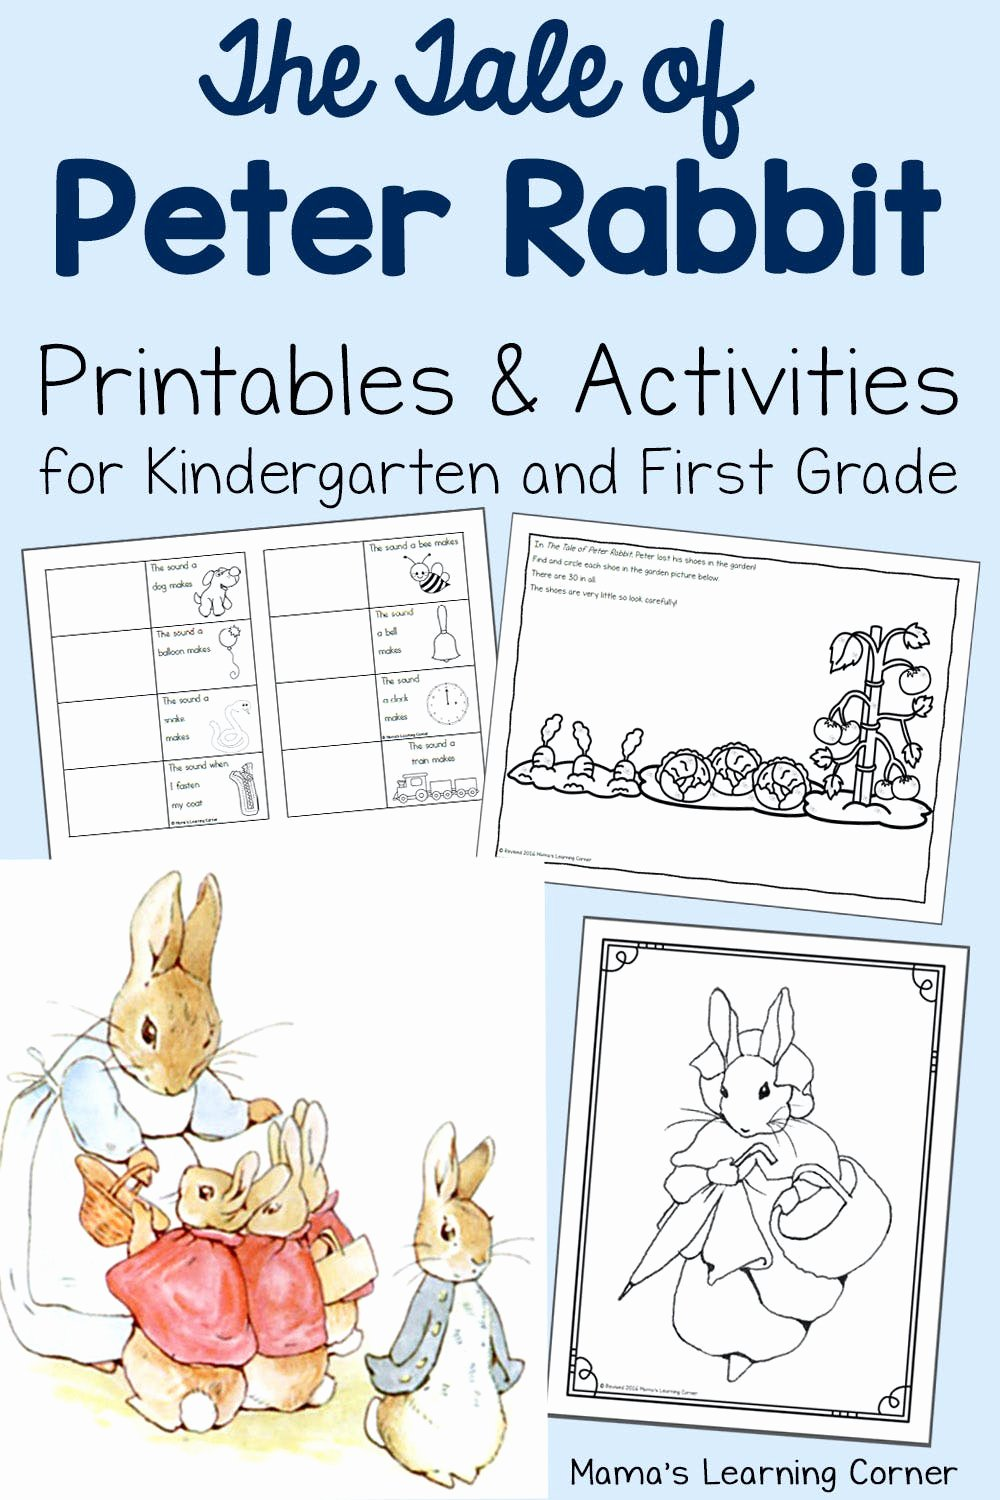 Rabbit Printable Worksheets for Preschoolers New the Tale Of Peter Rabbit Printable Activities Mamas